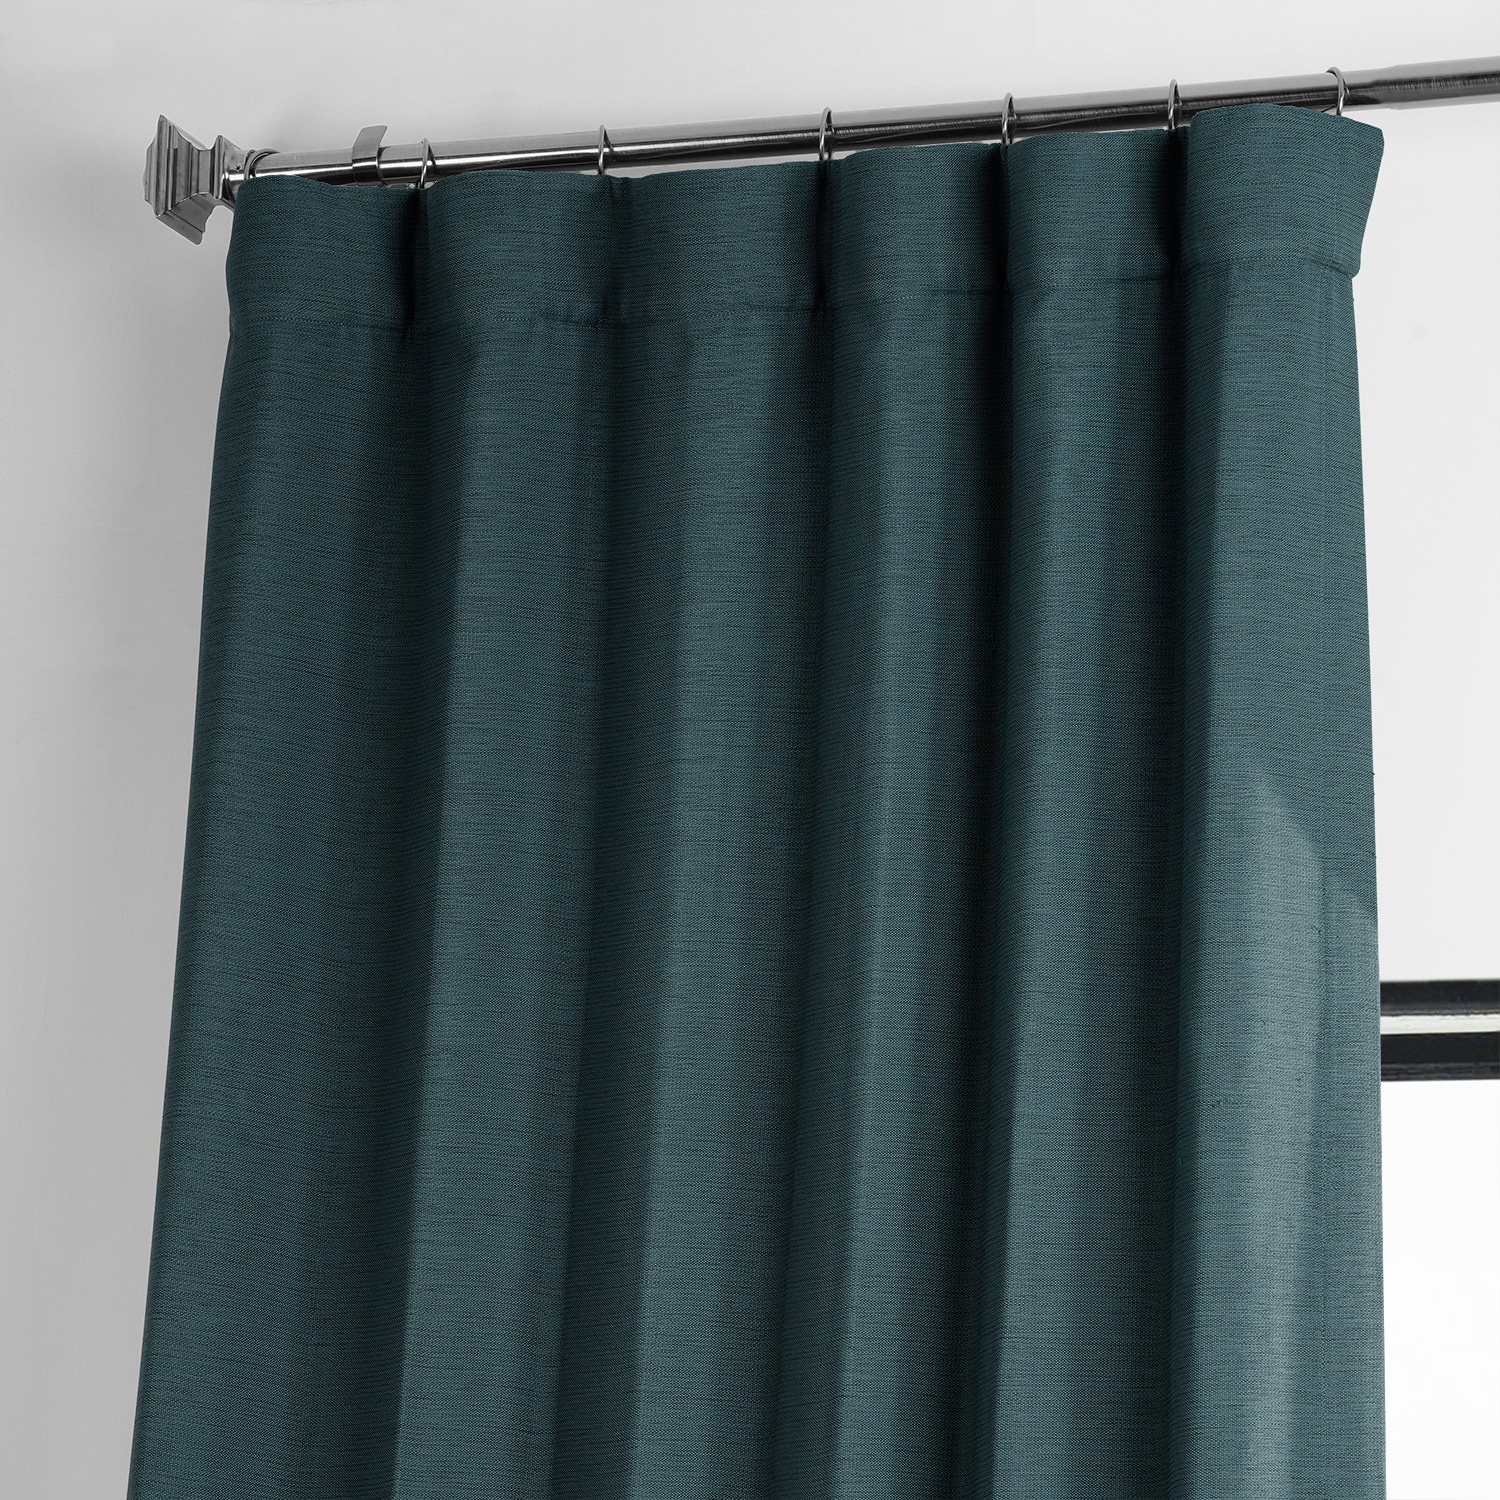 Bayberry Teal Bellino Blackout Room Darkening Curtain